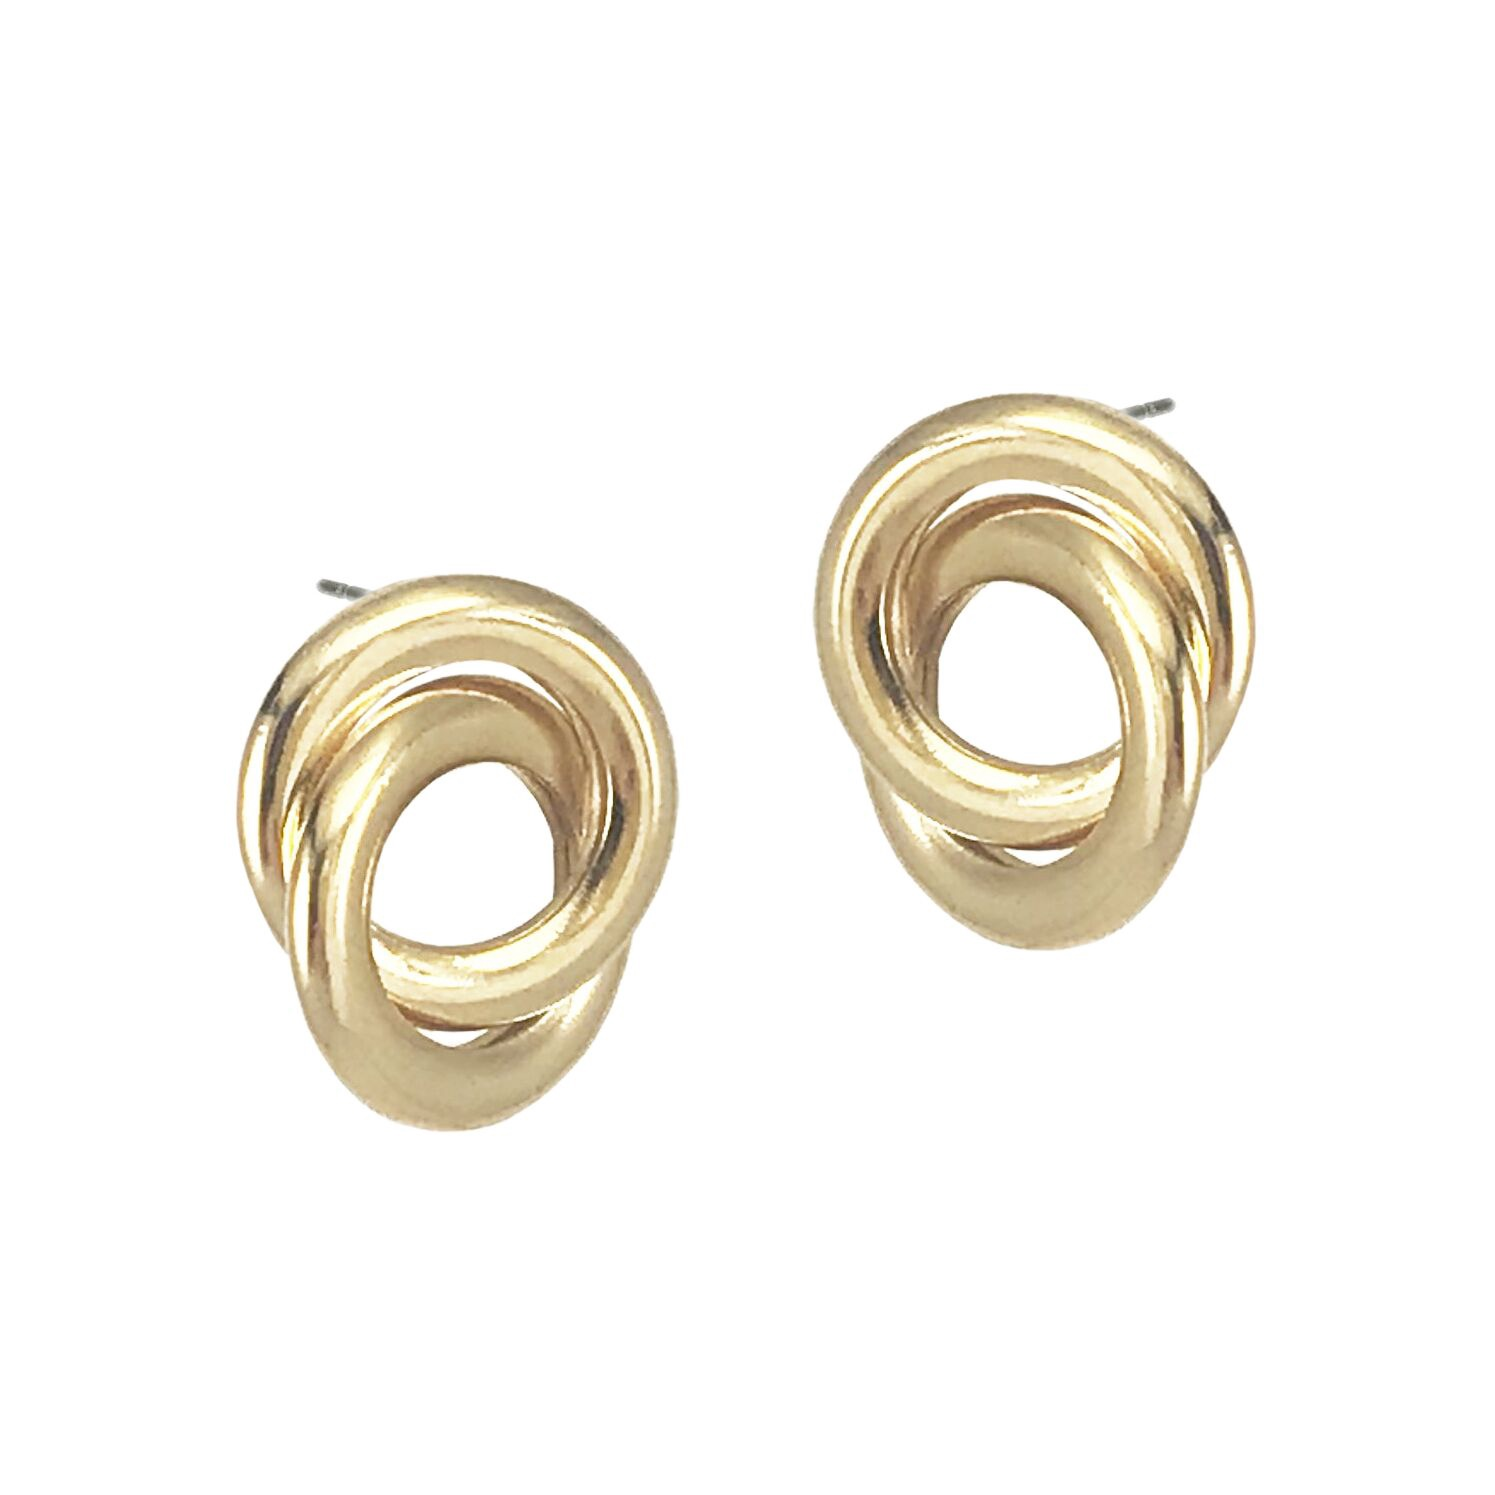 BIKO - FORGET ME KNOT STUDS IN GOLD